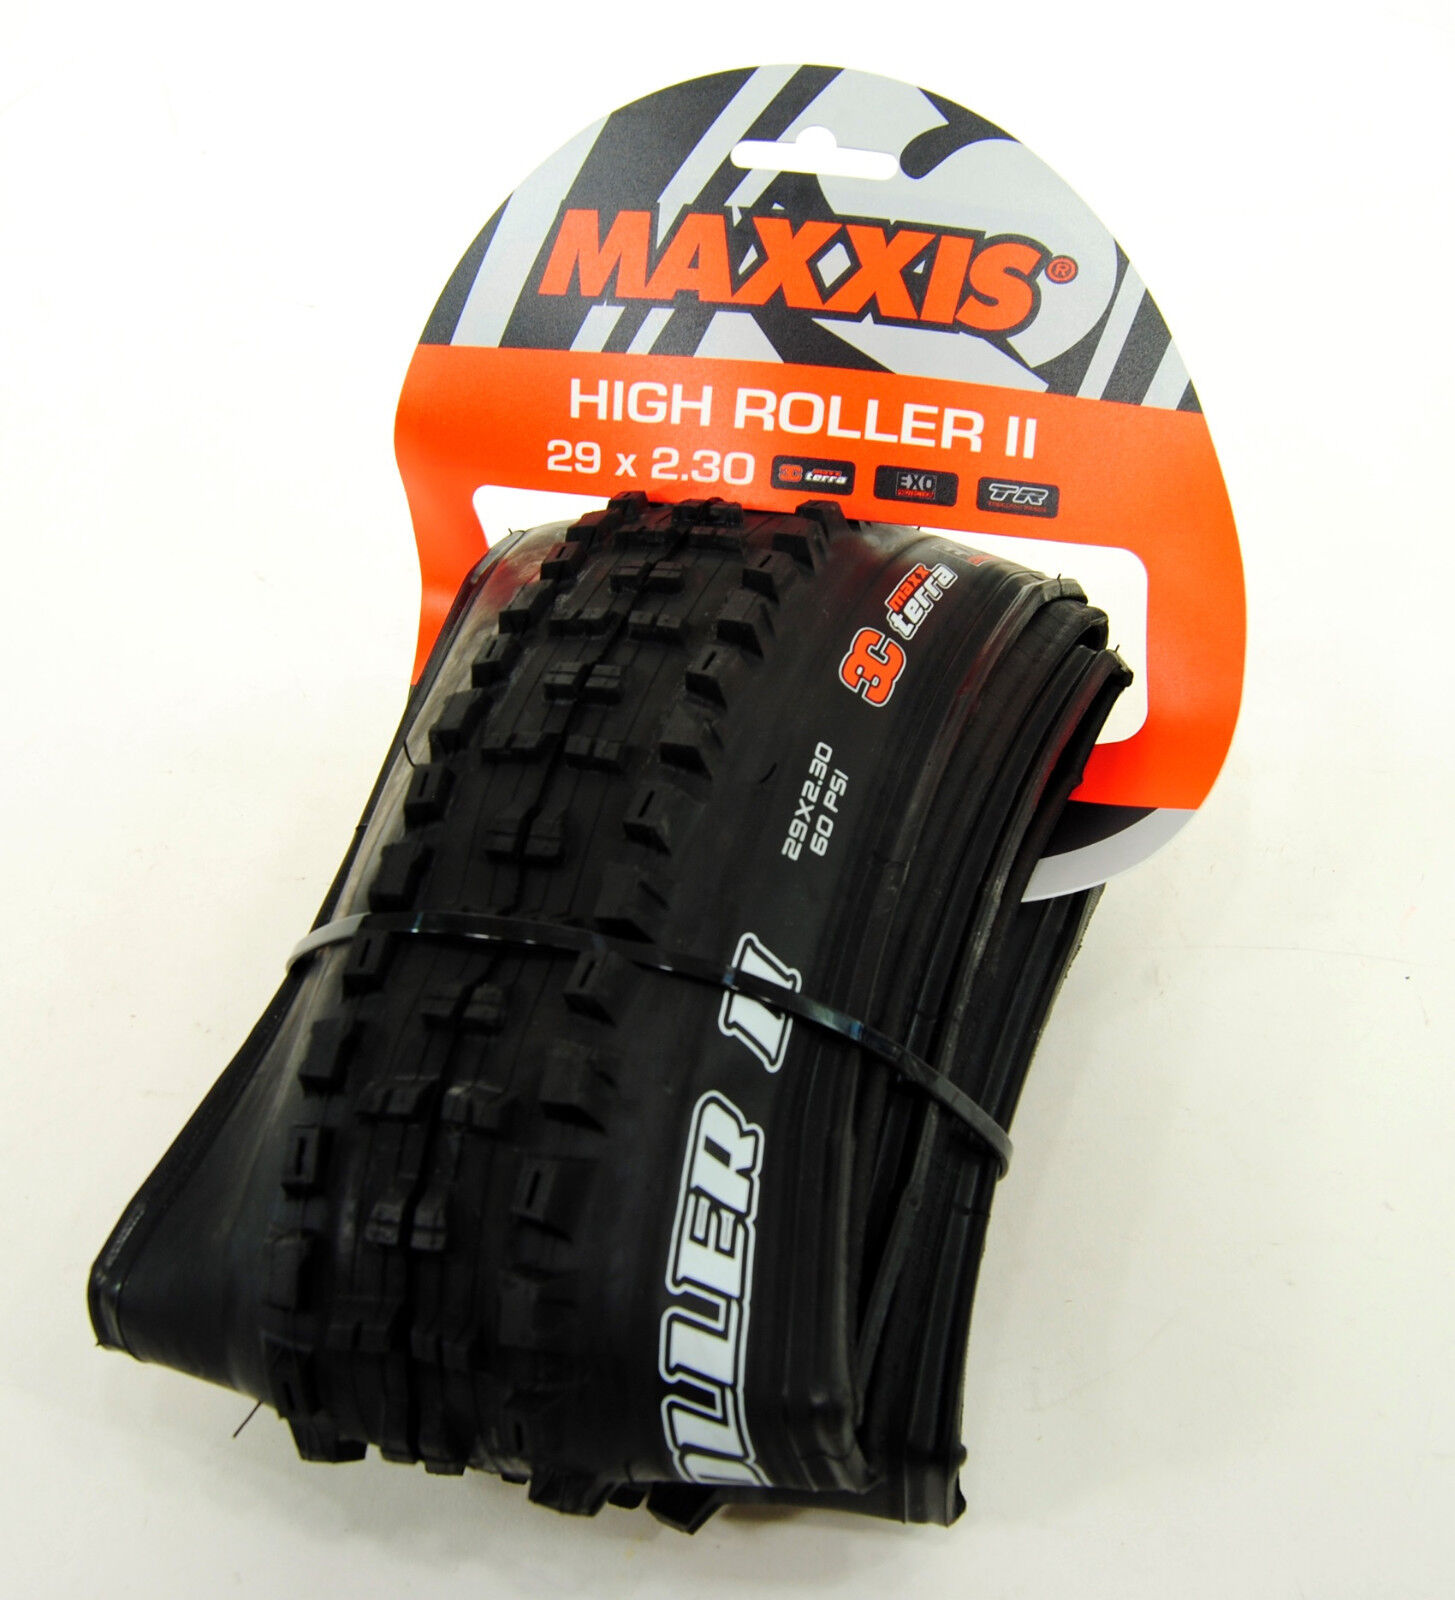 Maxxis High Roller II 29x2.3 3C EXO Tubeless Ready Mountain Bike Tire